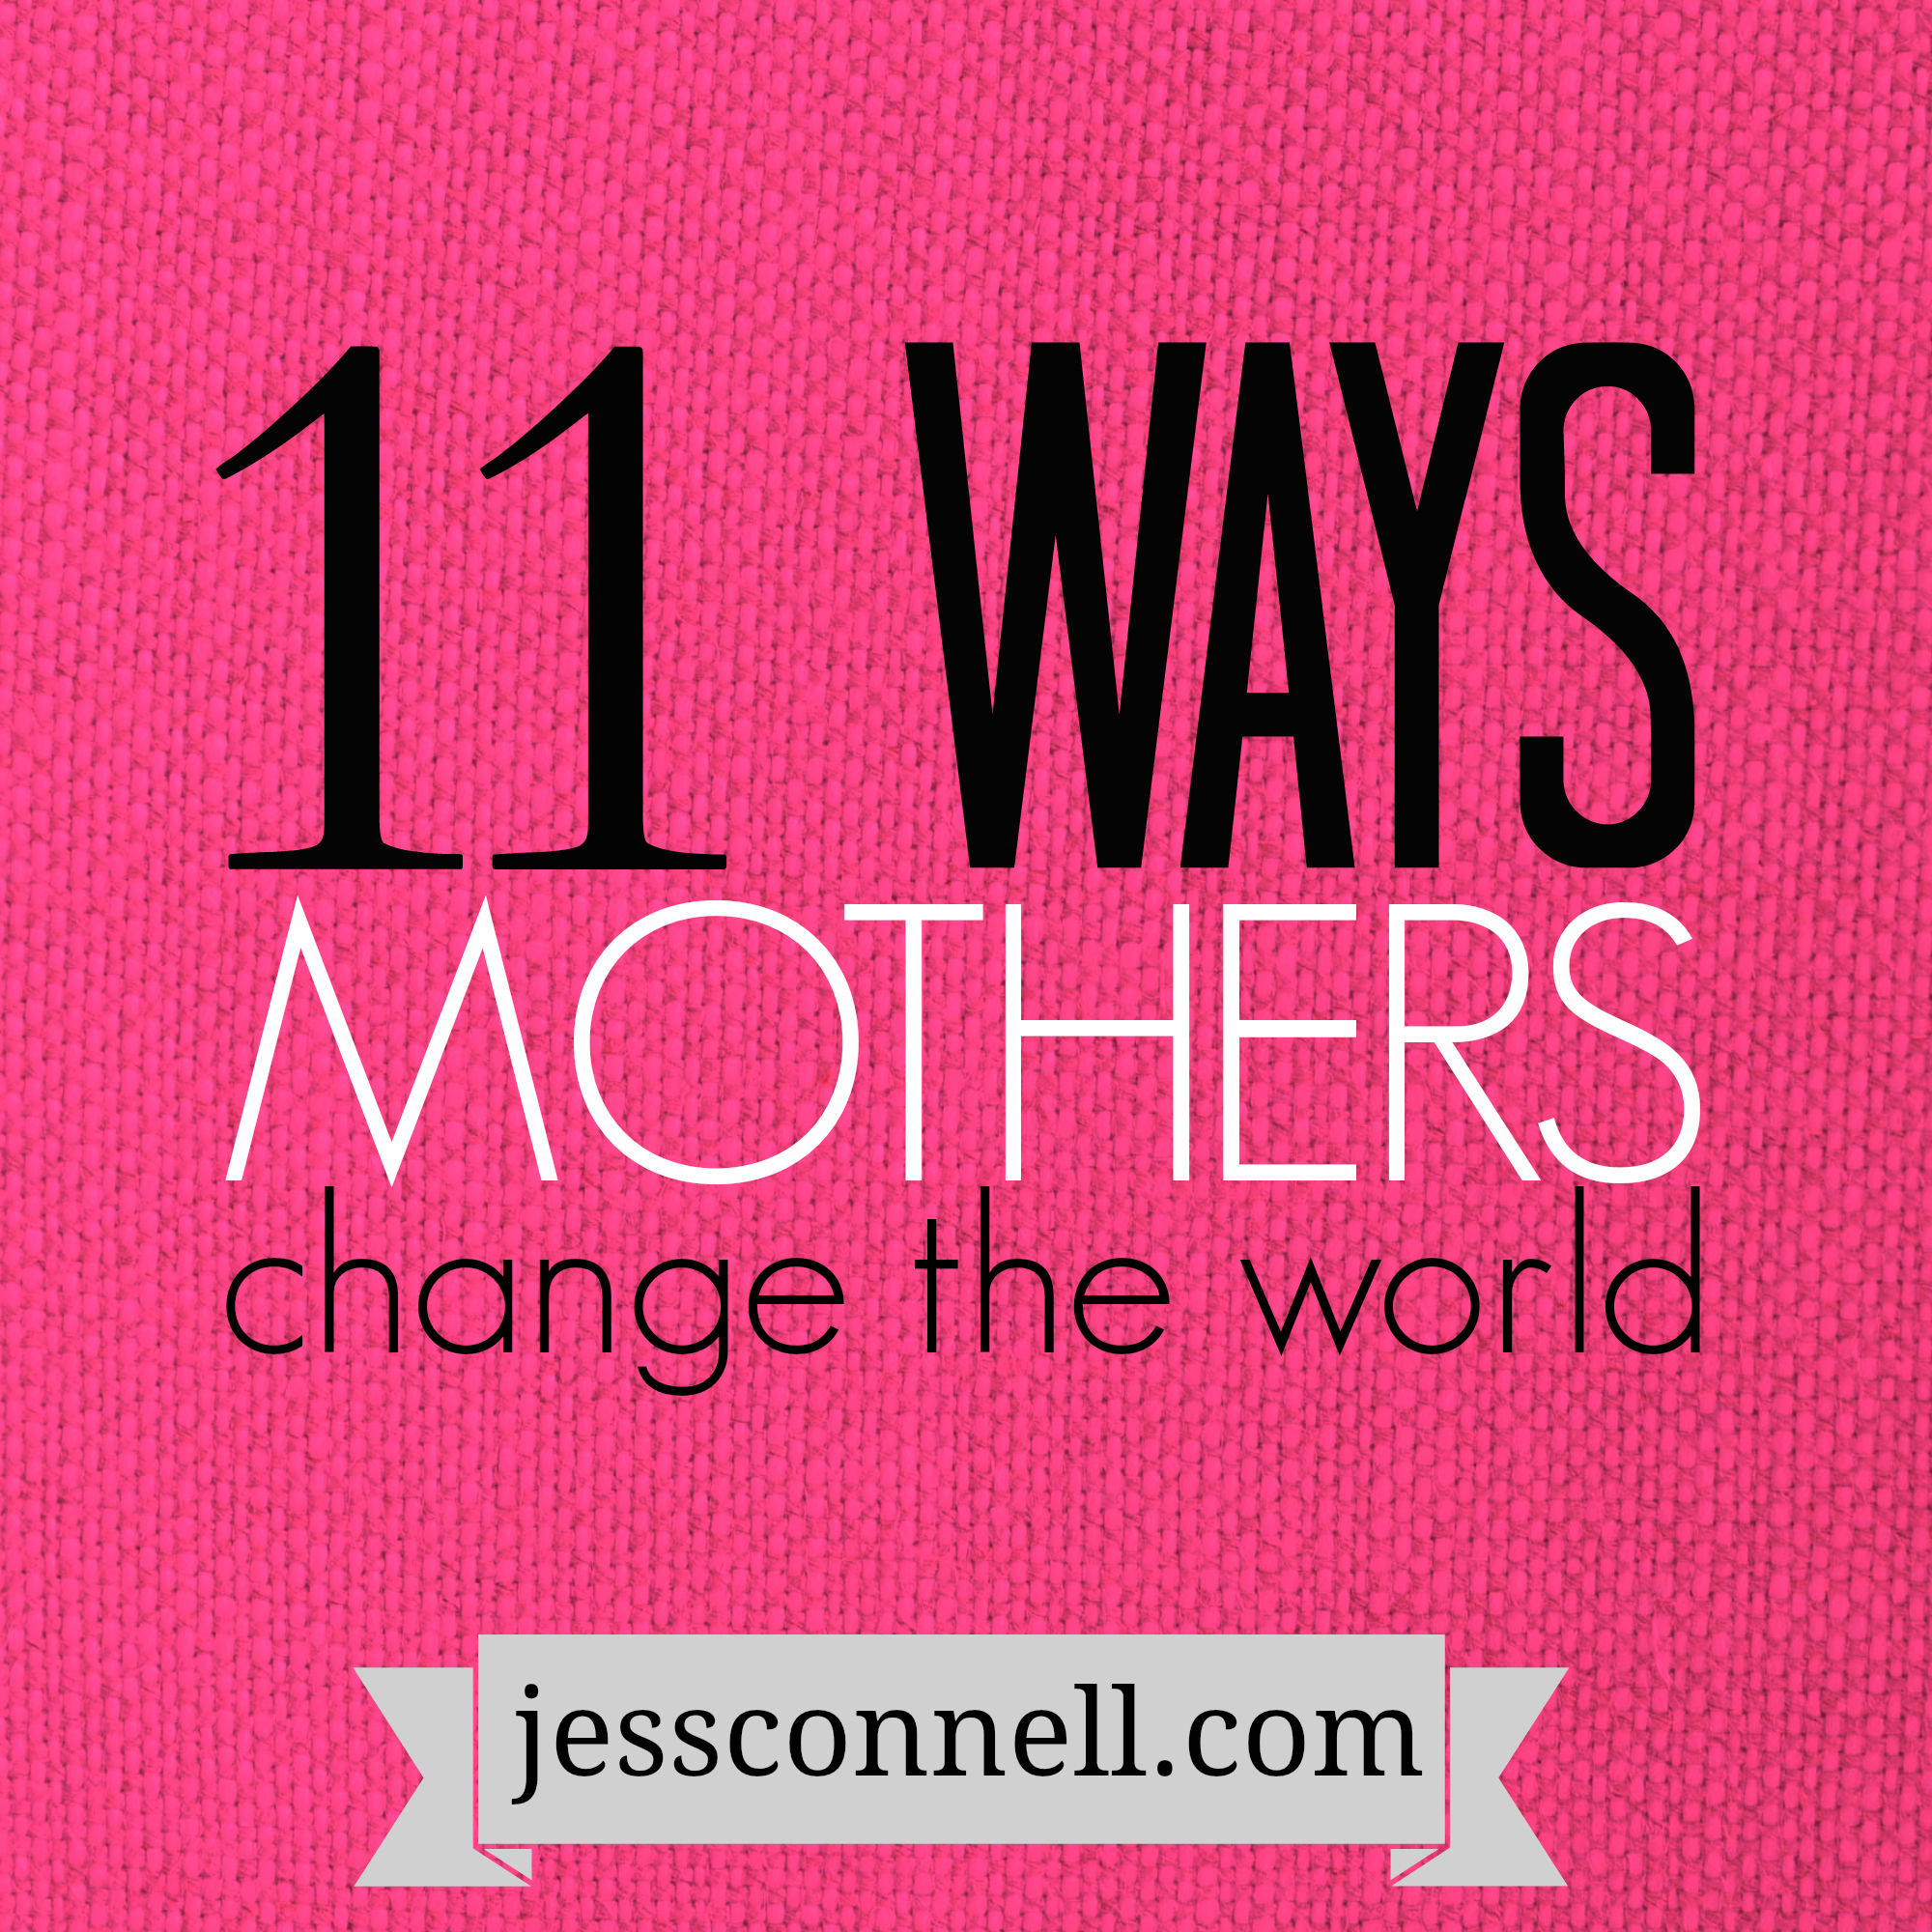 11 Ways Mothers Change the World // jessconnell.com